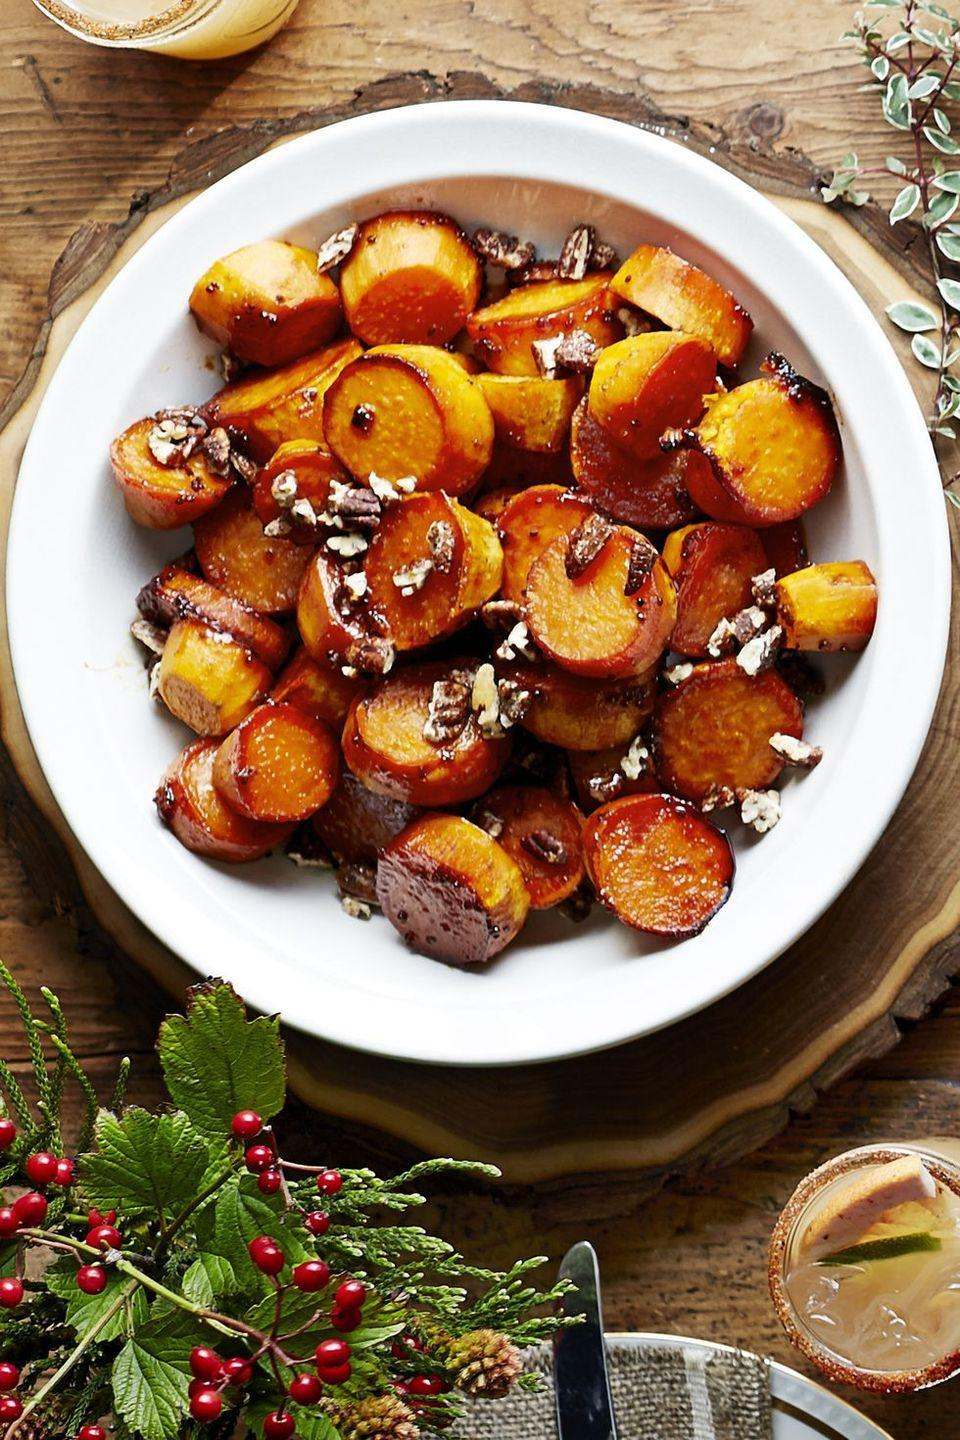 """<p>A staple sweetener in the South, sorghum makes for a delicious glaze on baked sweet potatoes.</p><p><em><a href=""""https://www.goodhousekeeping.com/food-recipes/a16043/sorghum-sweet-potatoes-recipe-clx1114/"""" rel=""""nofollow noopener"""" target=""""_blank"""" data-ylk=""""slk:Get the recipe for Sorghum-Glazed Sweet Potatoes »"""" class=""""link rapid-noclick-resp"""">Get the recipe for Sorghum-Glazed Sweet Potatoes »</a></em></p>"""